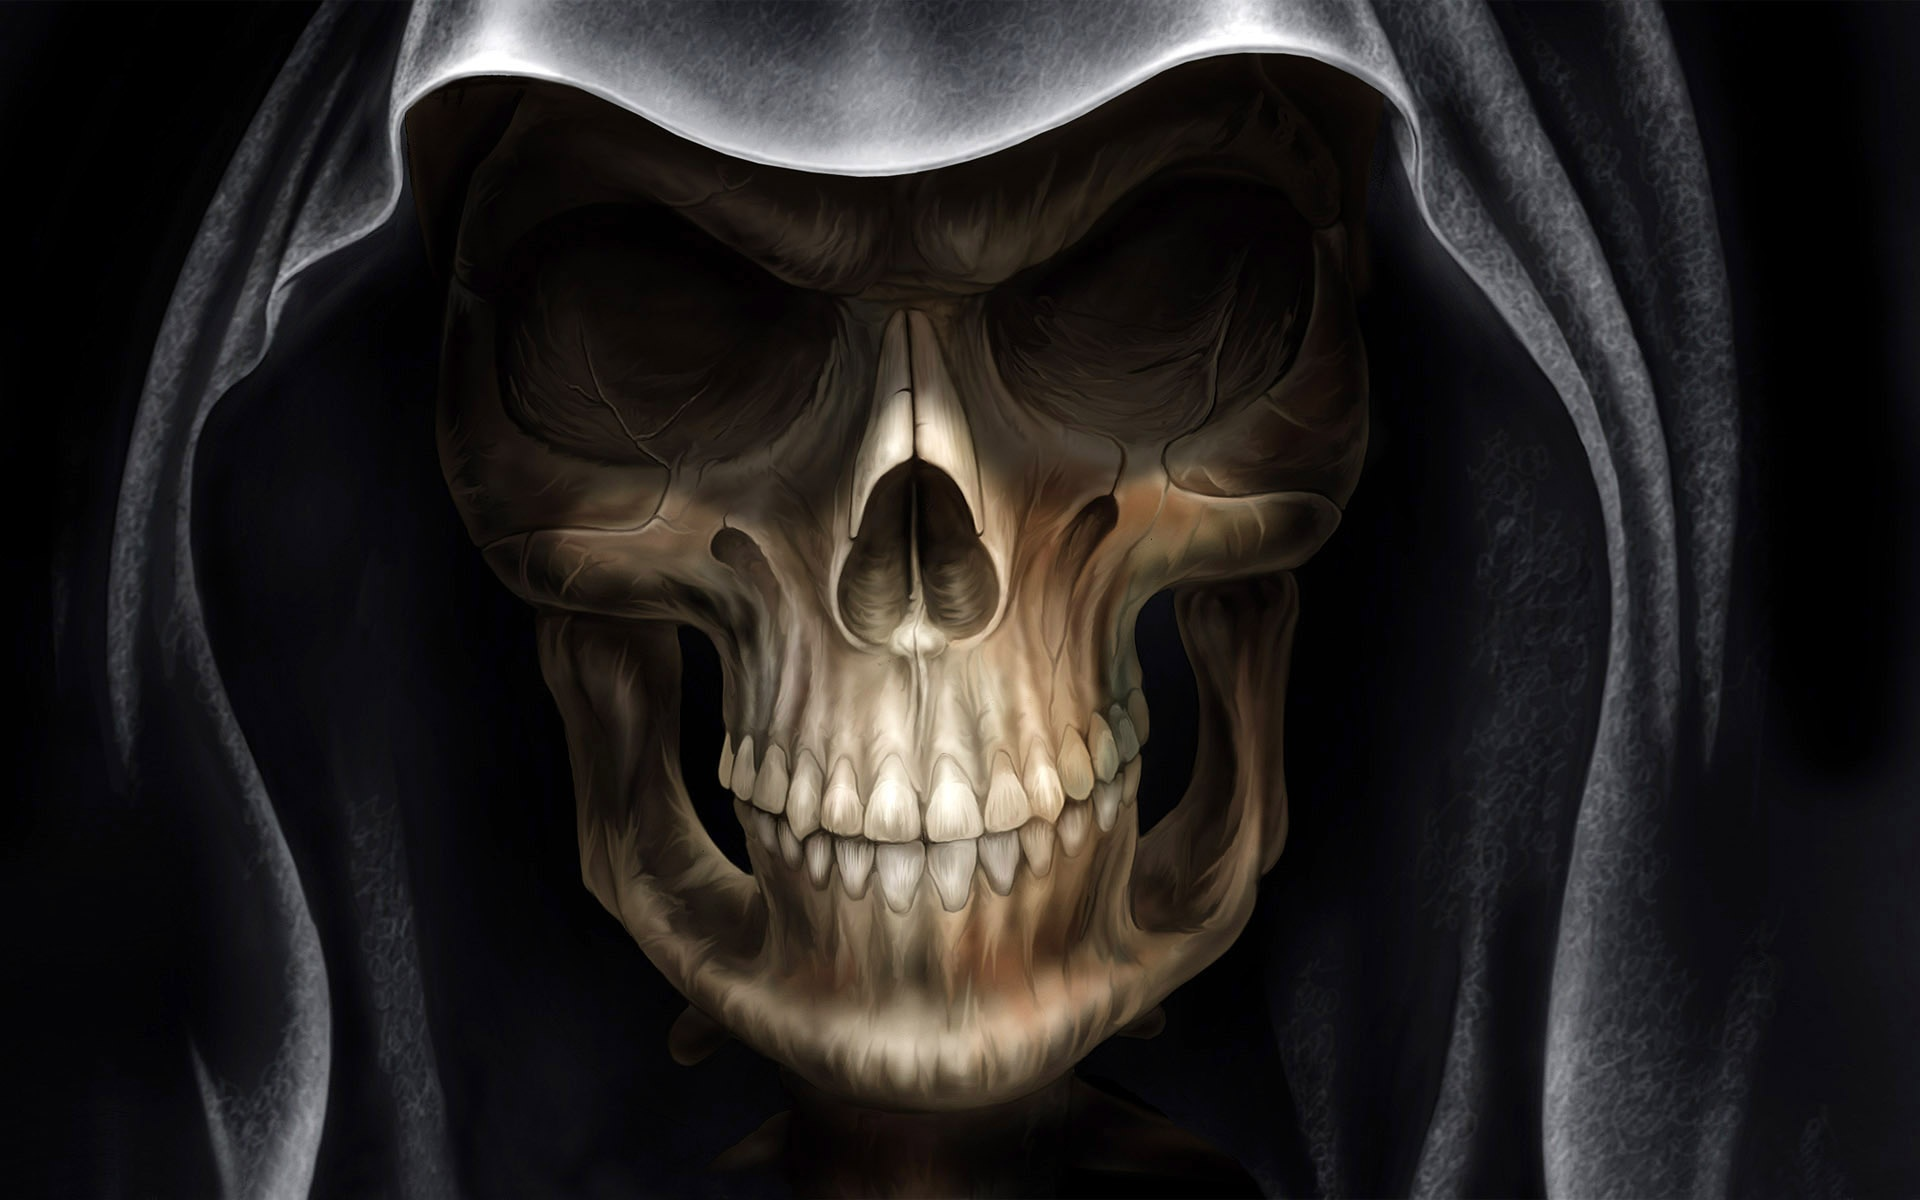 Demon Alien Devil Skull Wallpapers In Jpg Format For Free